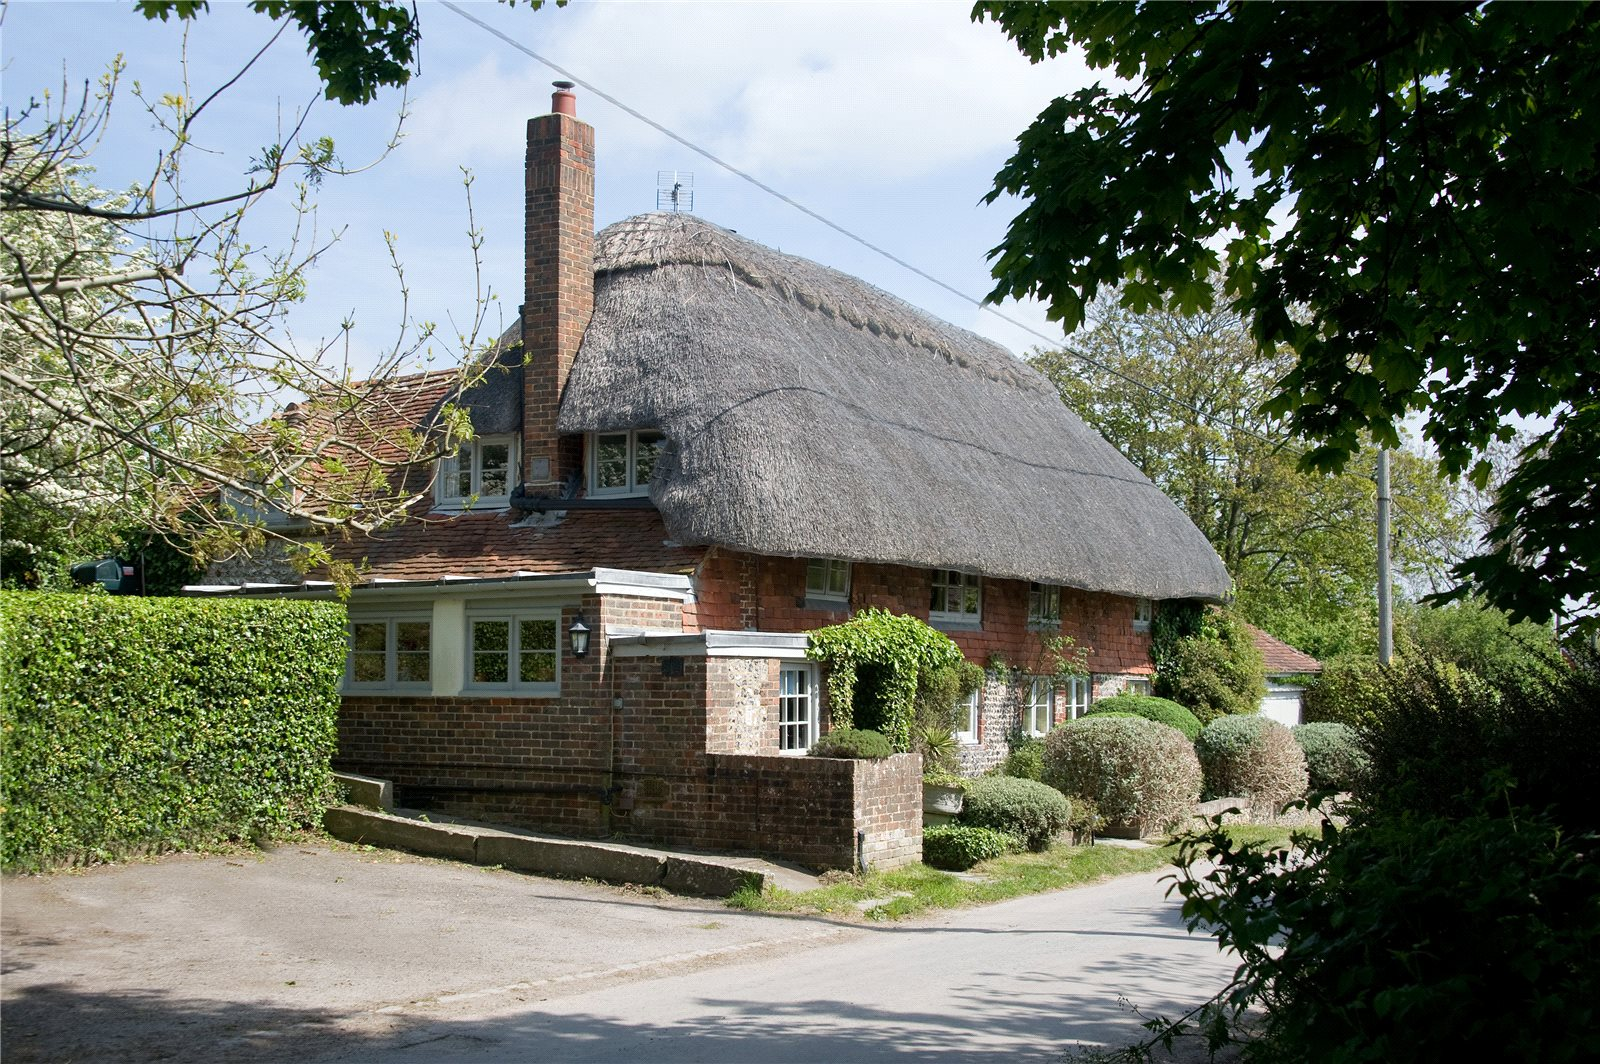 独户住宅 为 销售 在 The Village, Alciston, Polegate, East Sussex, BN26 Polegate, 英格兰